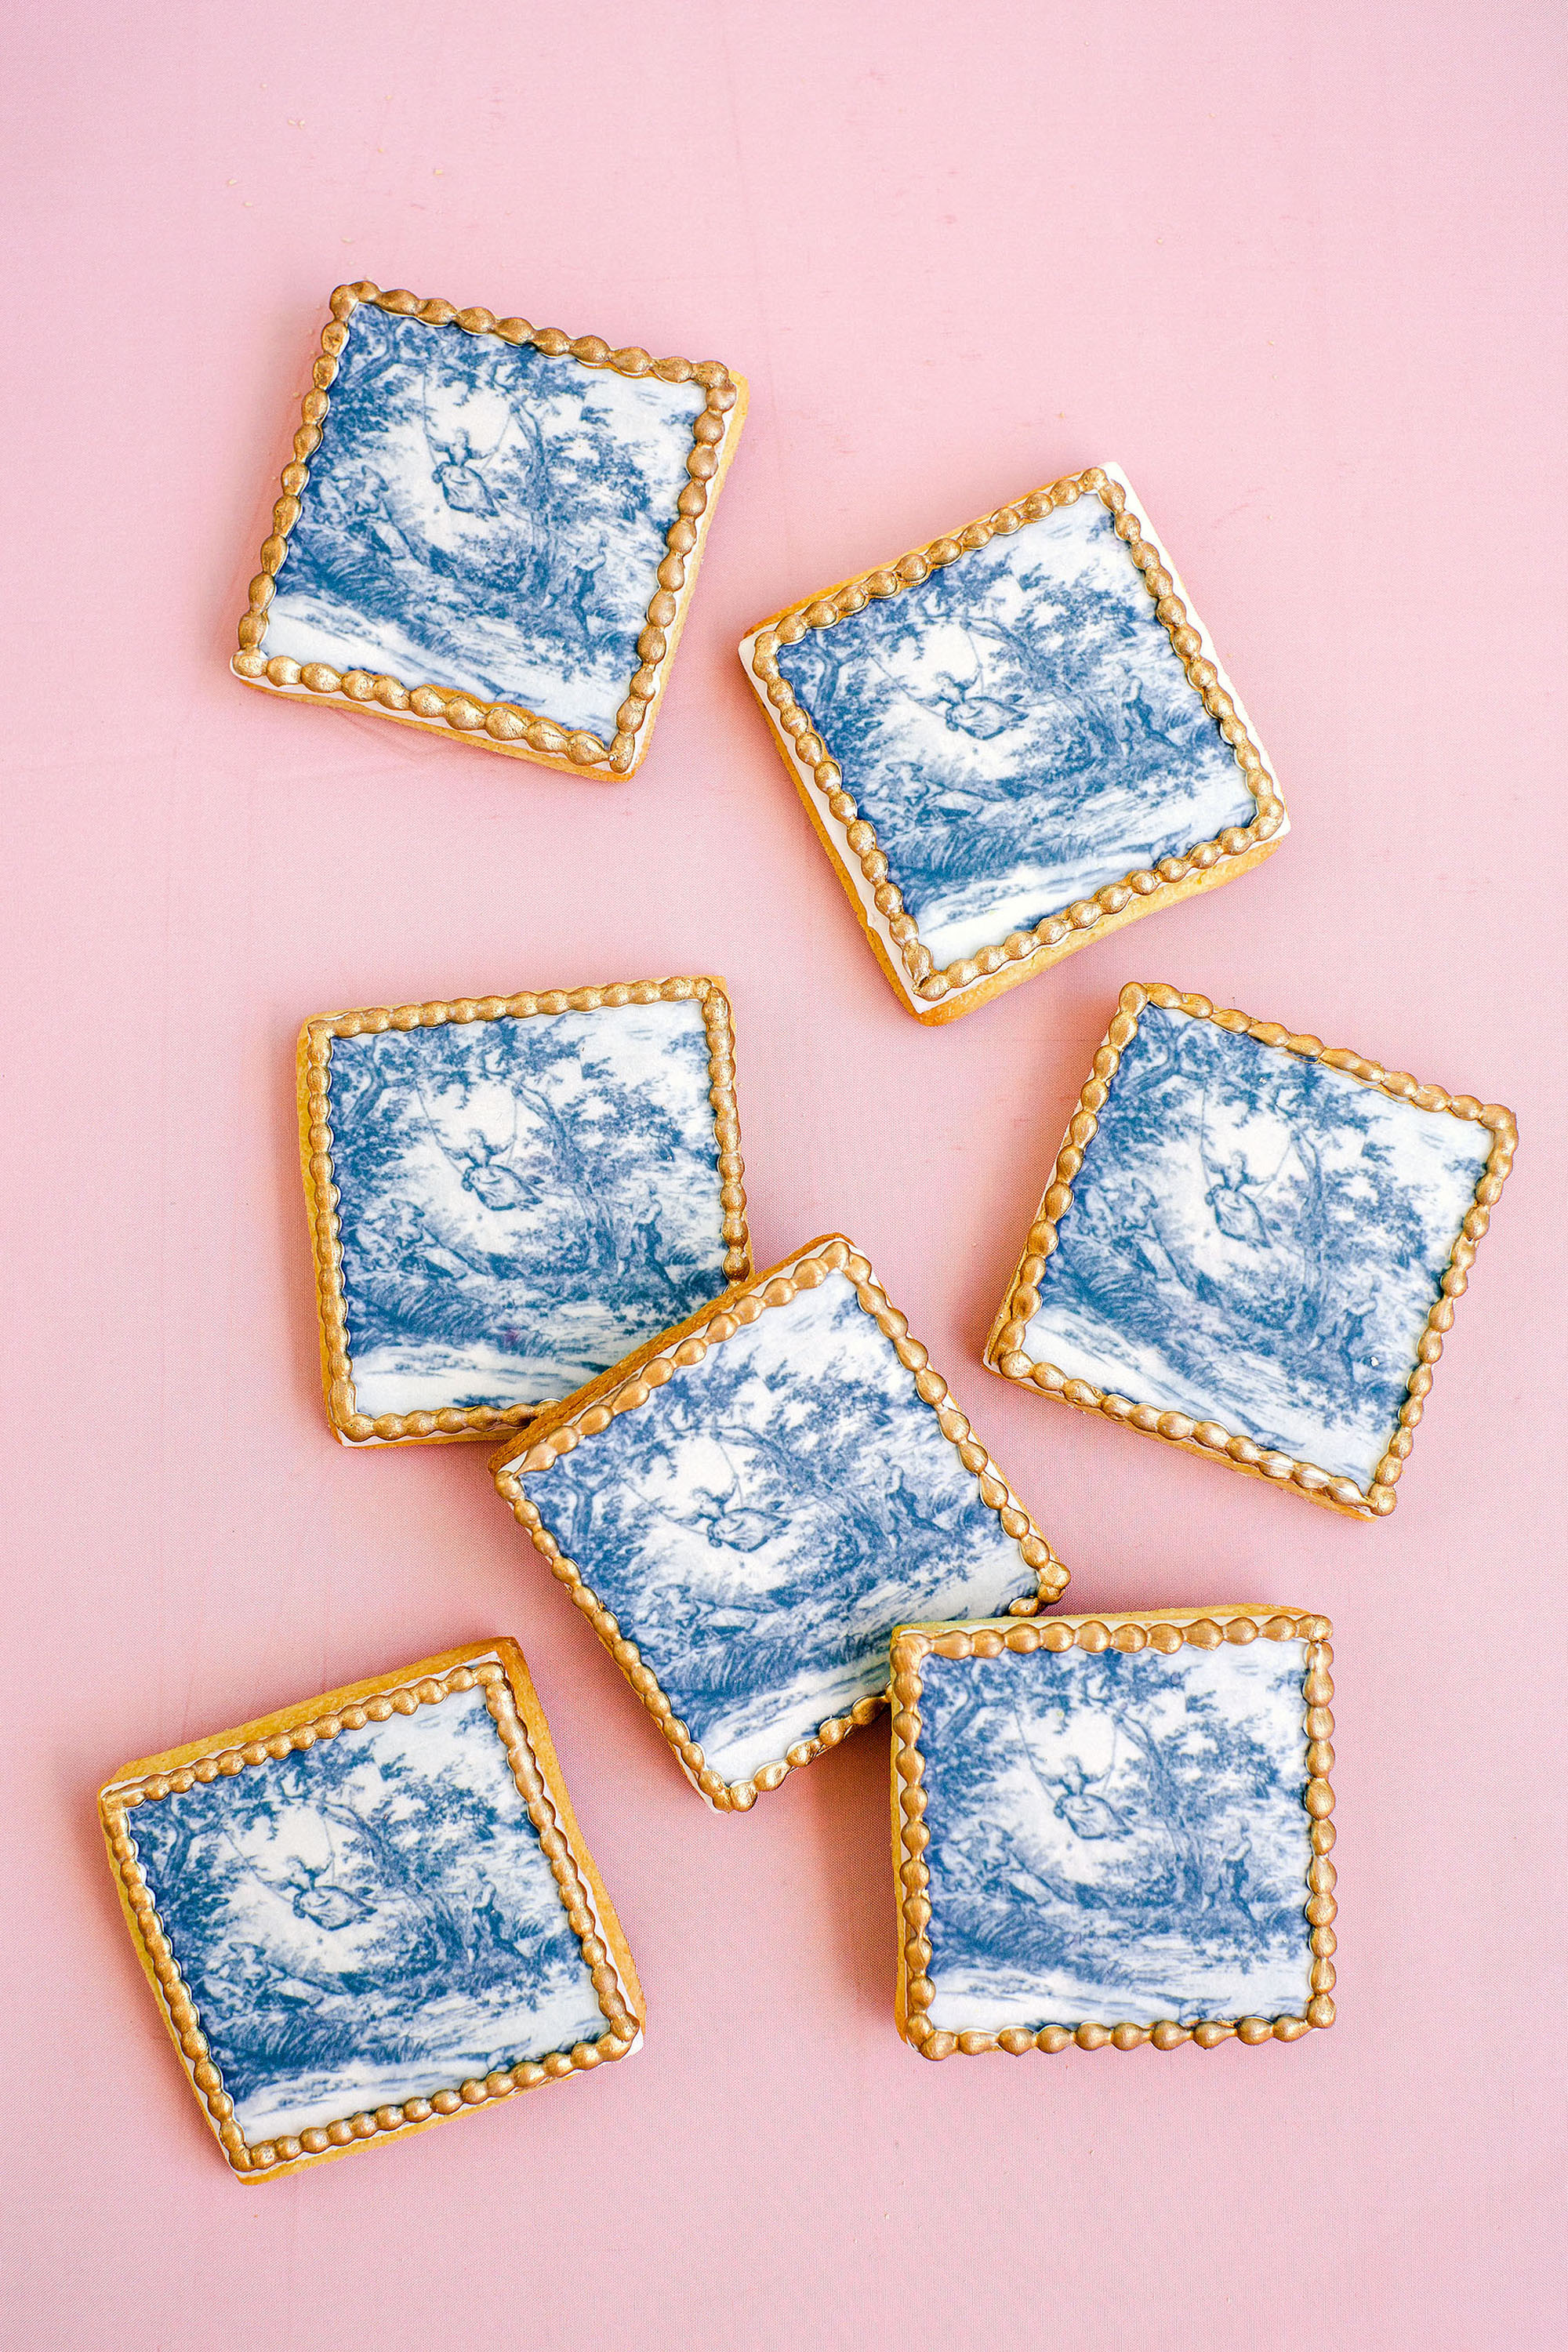 Trending Now: Dutch Delft and Chinoiserie-Inspired Wedding Décor